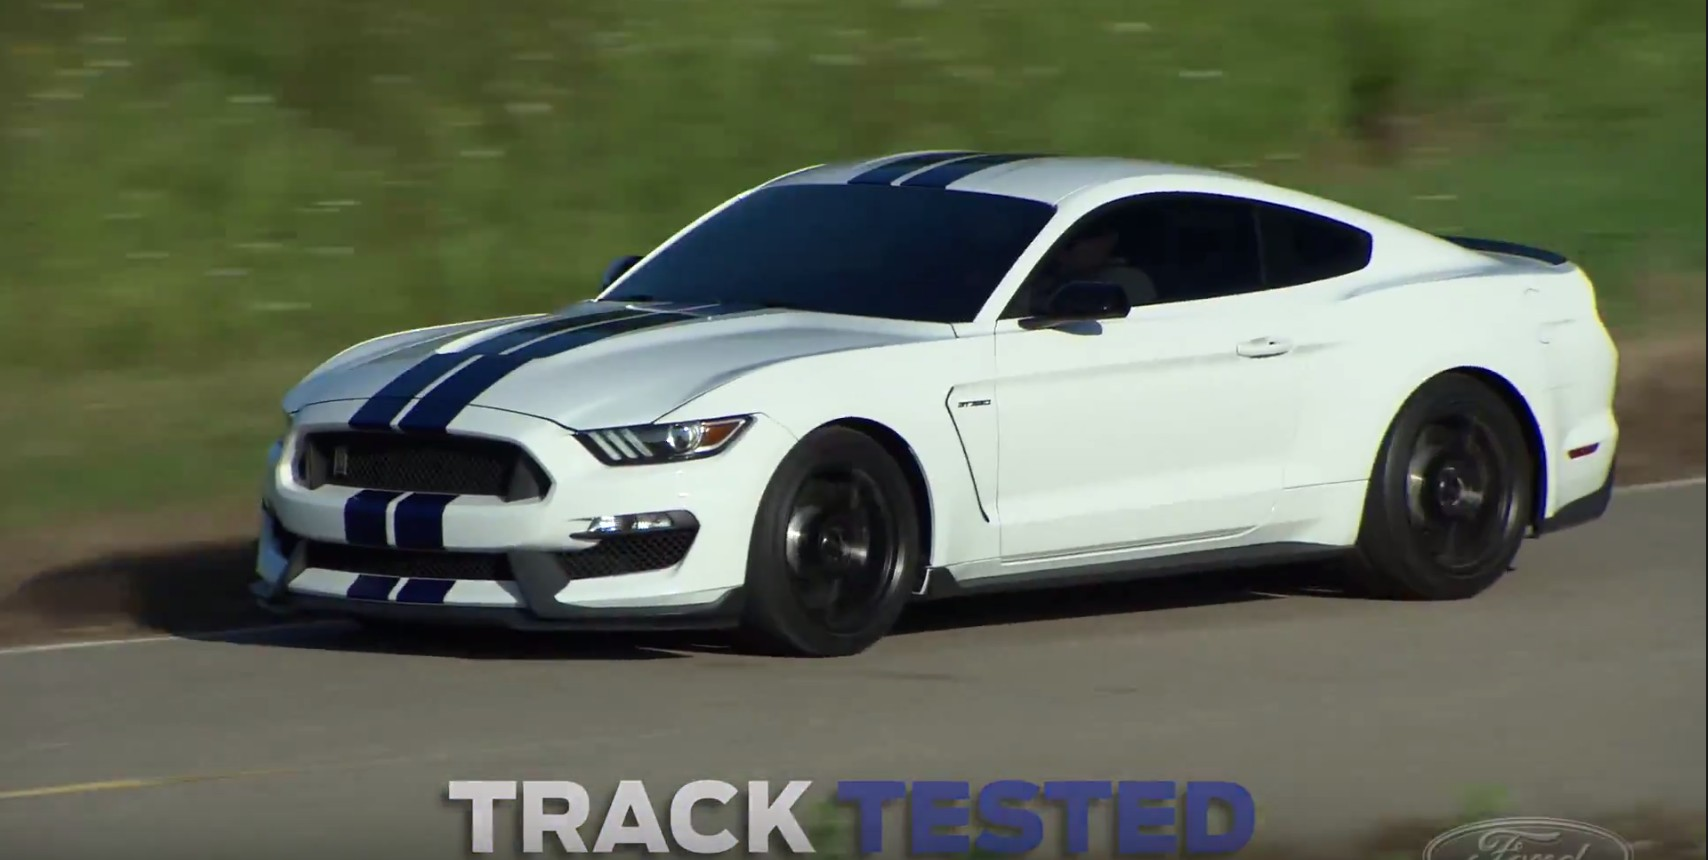 Ford Mustang Shelby Gt350 Track Tested At Vir Video